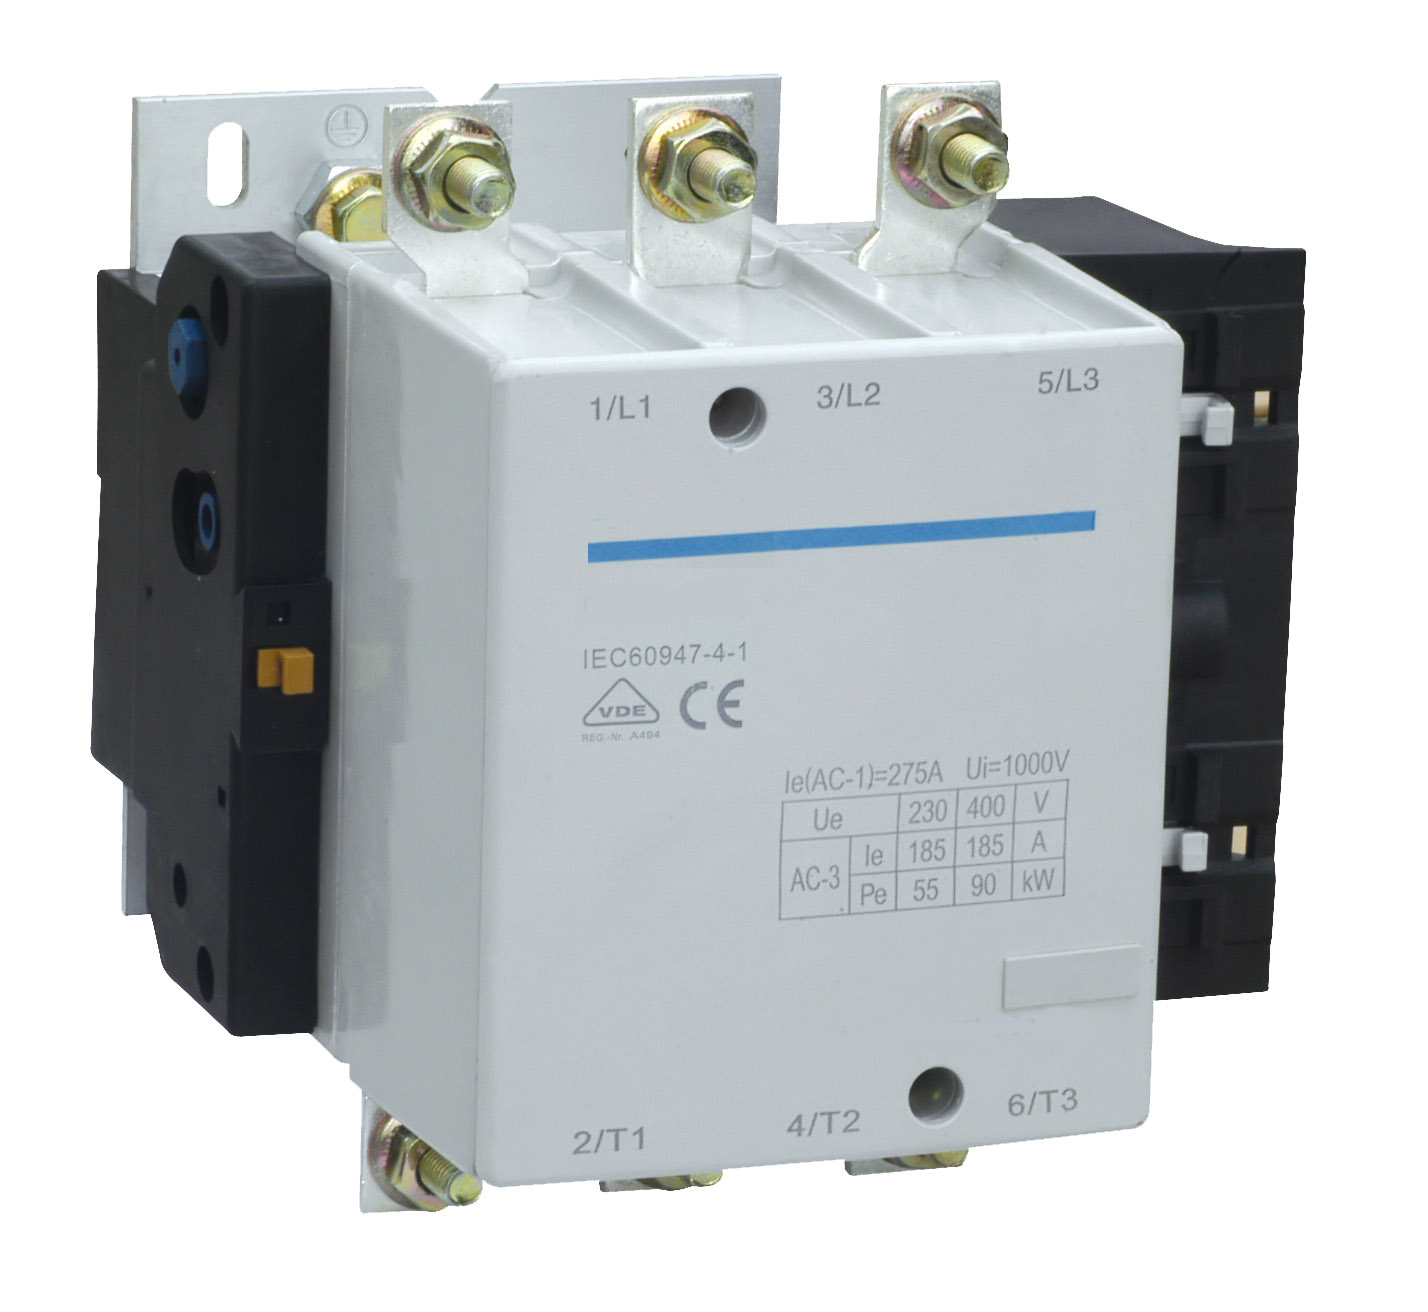 Allen Bradley 100siemens 3tf Ge Cl And Cutler Hammer Ce Contactor 15 Circuit Breaker Wiring Diagram In Addition Contactors 100 Siemens Cross Reference Us Brand With The Trusted Ul Certification